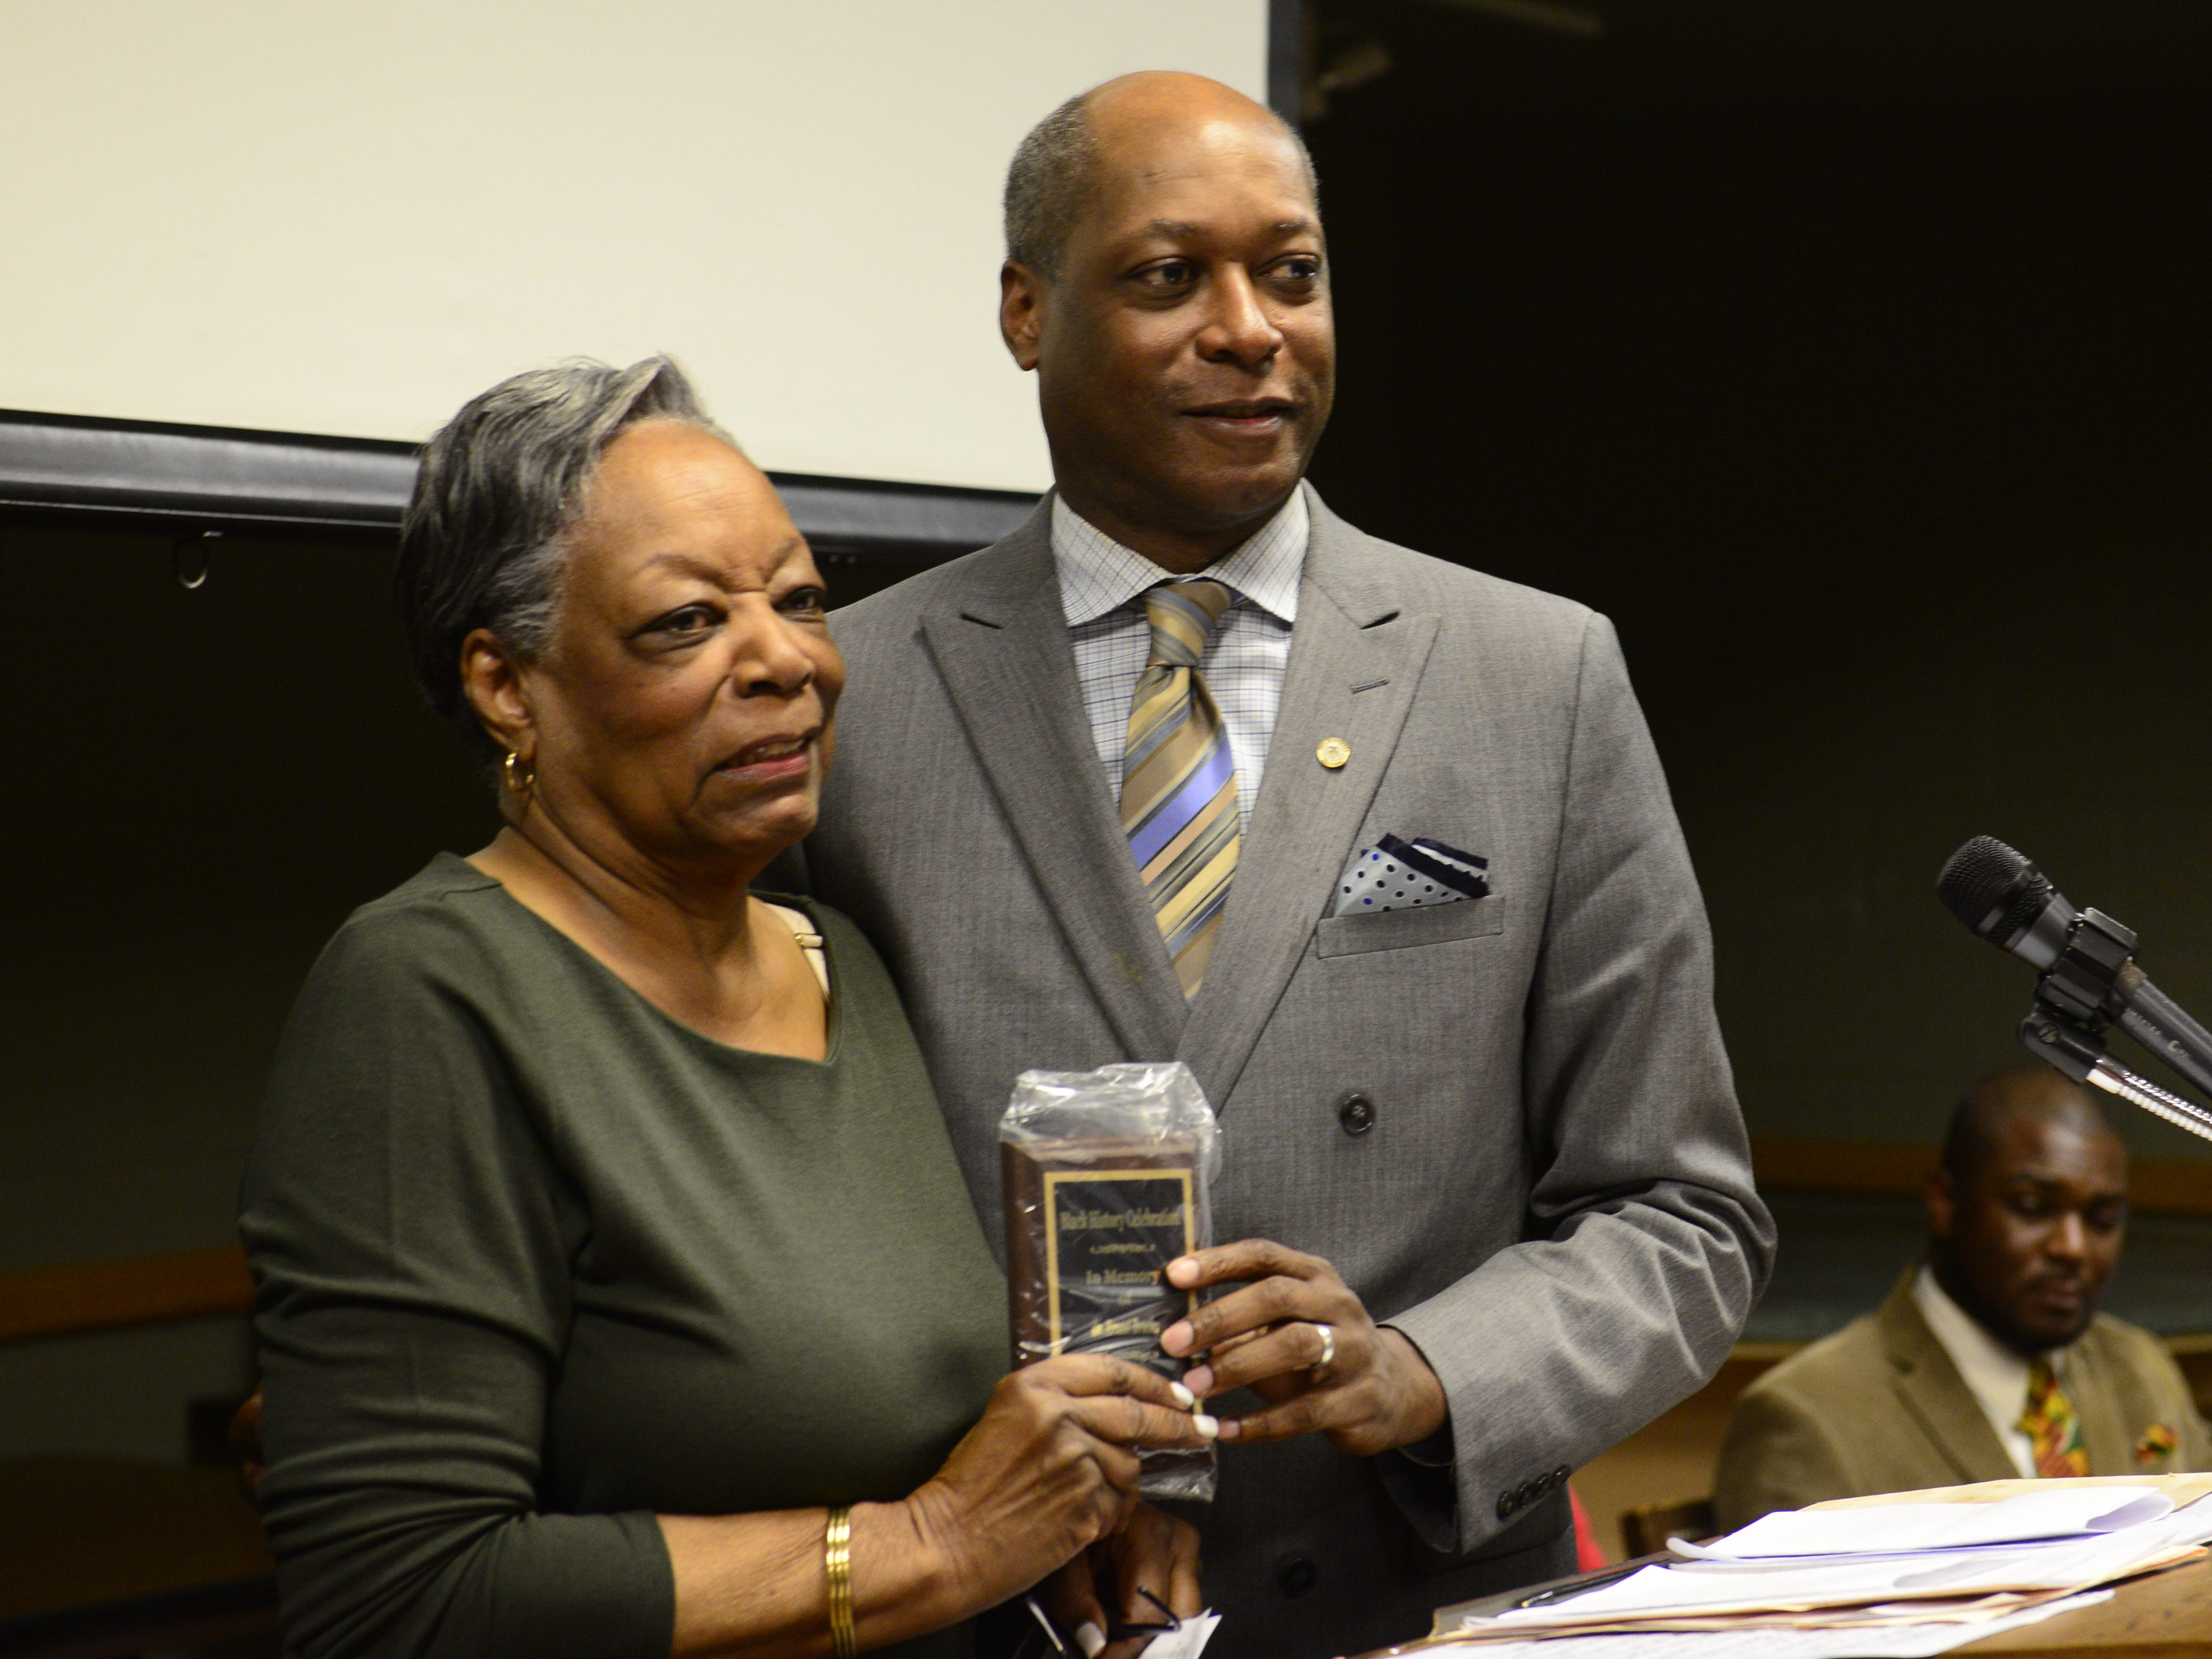 Ernest Brooks II along with is mother Dr. Patricia Brooks accept the an award in honor of his father Ernest Brooks at the Jackson-Madison County Library in Jackson, Tenn. Feb. 27, 2019